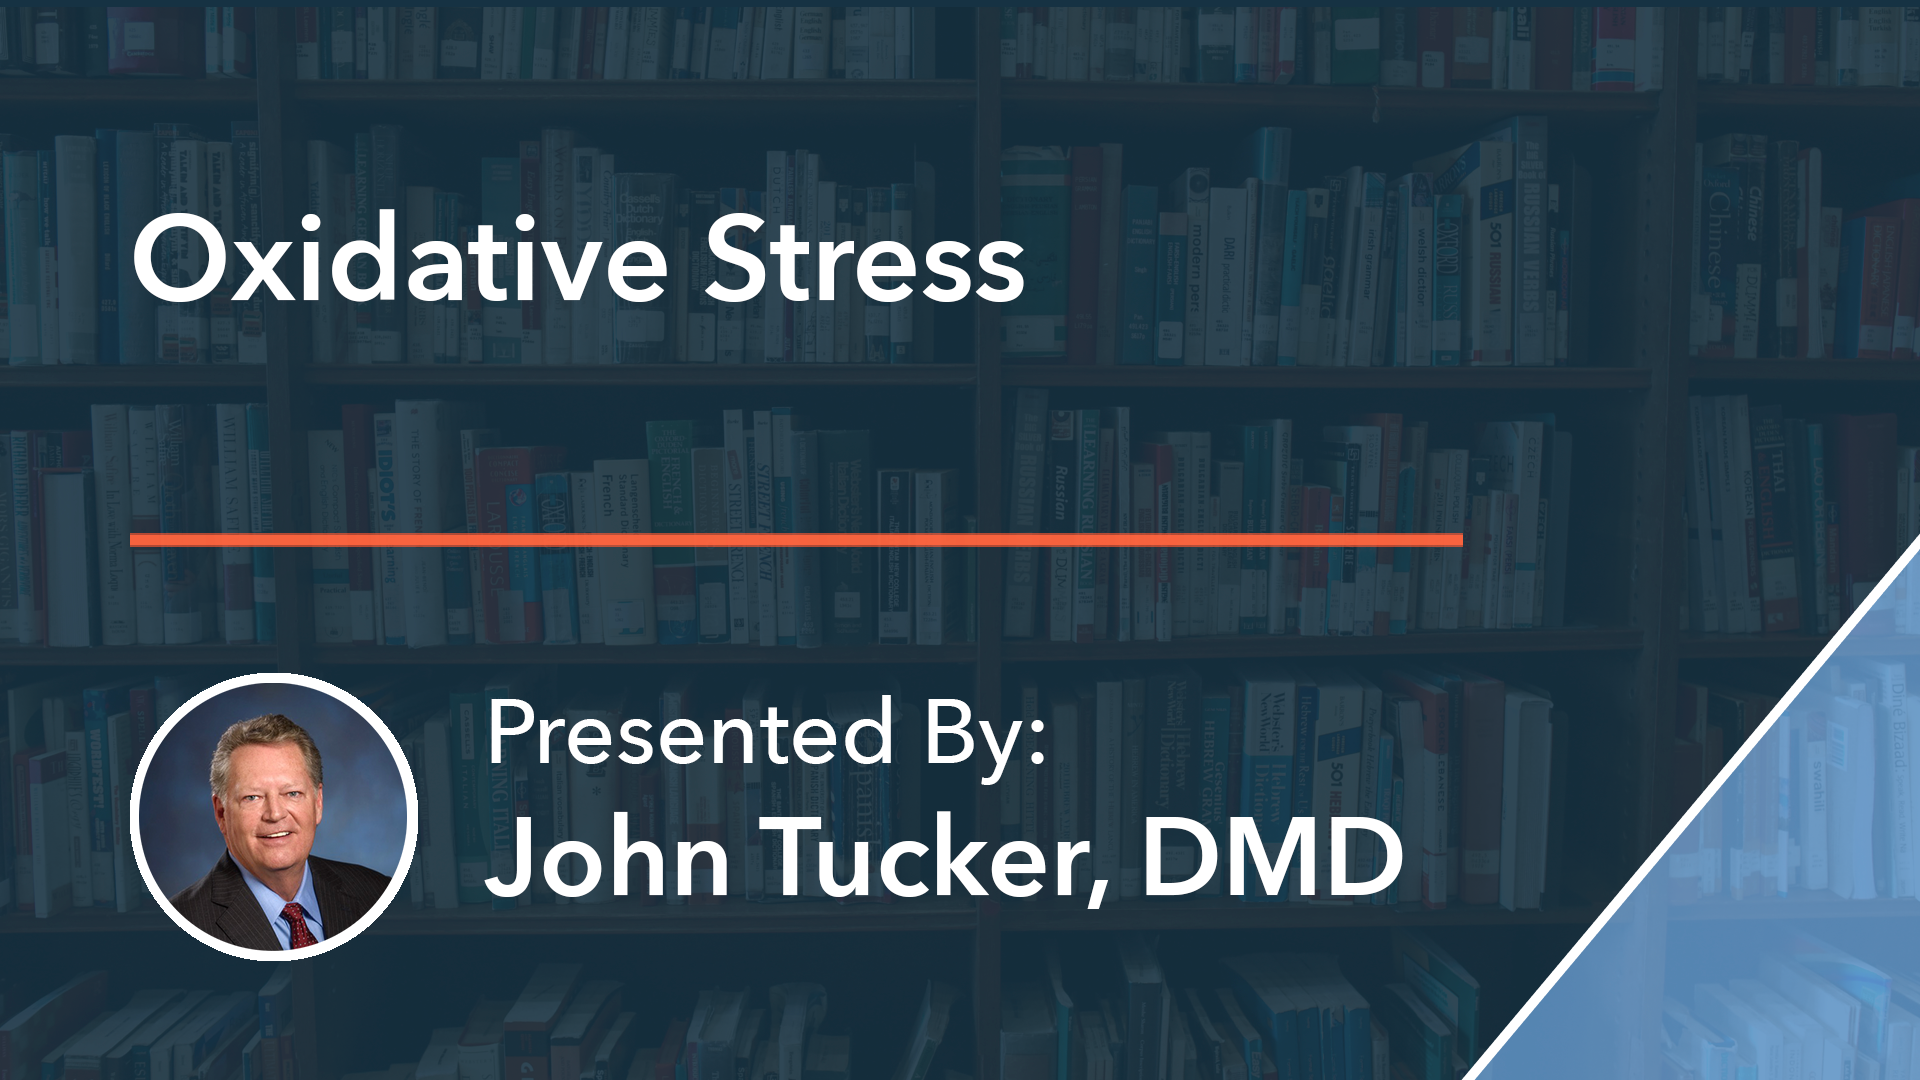 Oxidative Stress Dr John Tucker